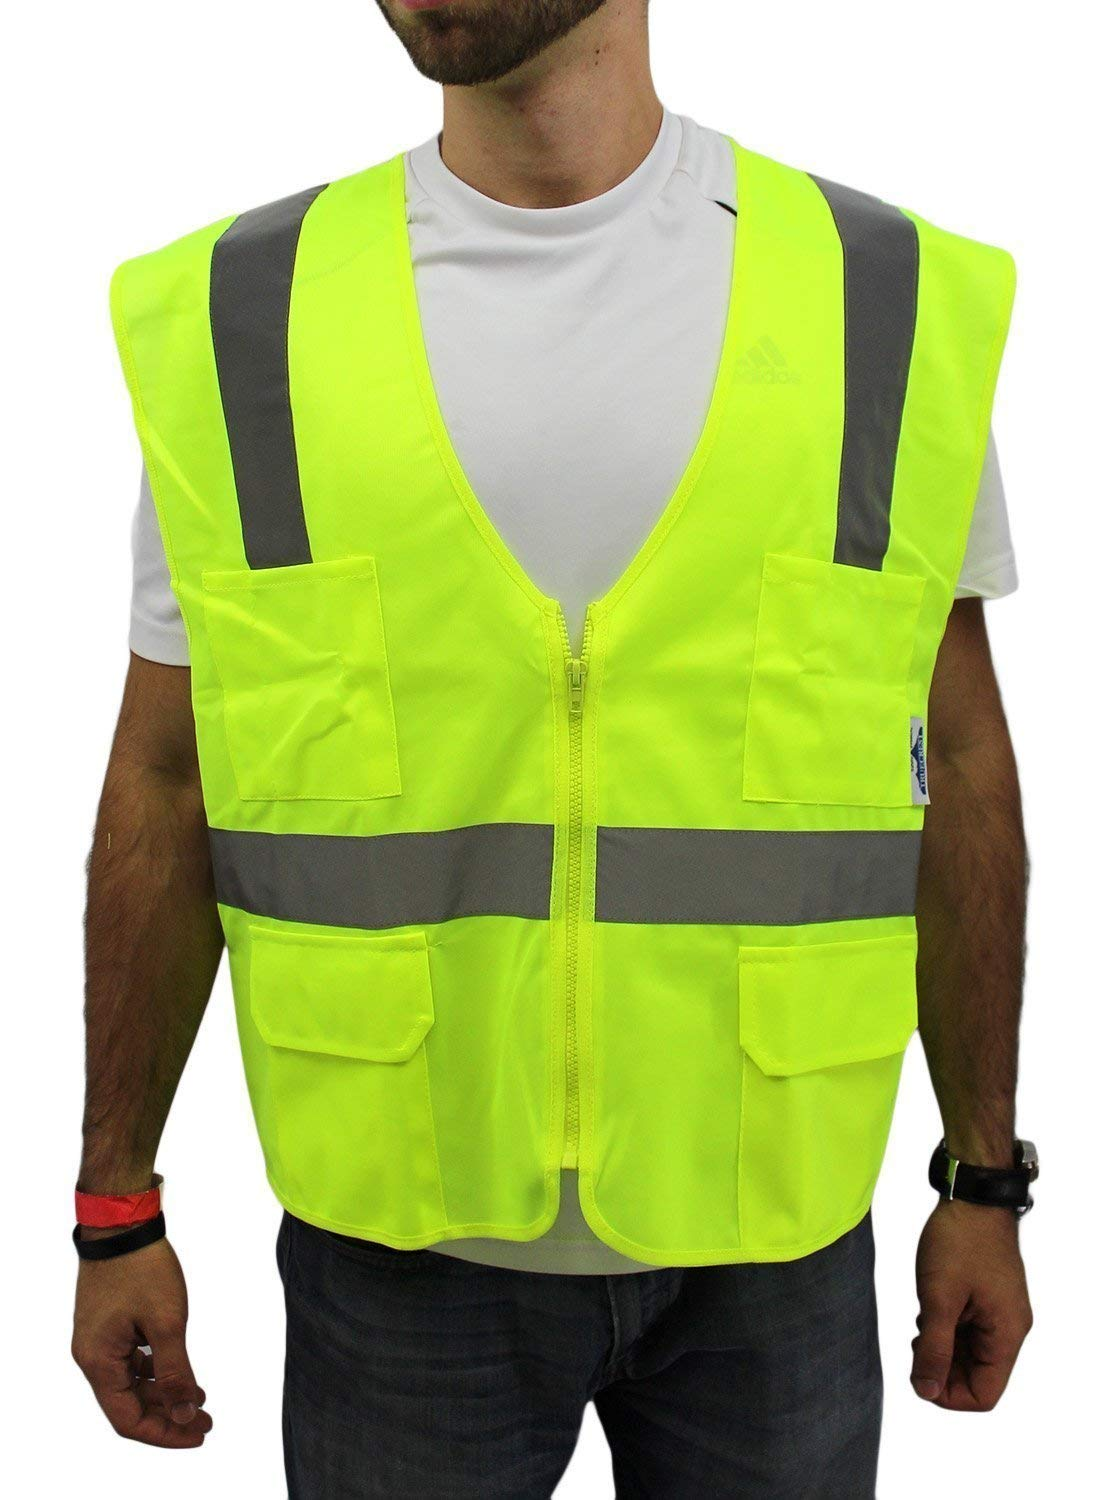 Short Sleeve ansi 107-2015 Class 3 Lime tee Short with Pocket and Perimeter Guard Insect Repellant,0.2 Height Medium//38-40 Chest 30 Length 46 Wide Yellow 0.2 Height 46 Wide 30 Length MARKET SHARE BRANDS uhv868ylw-m